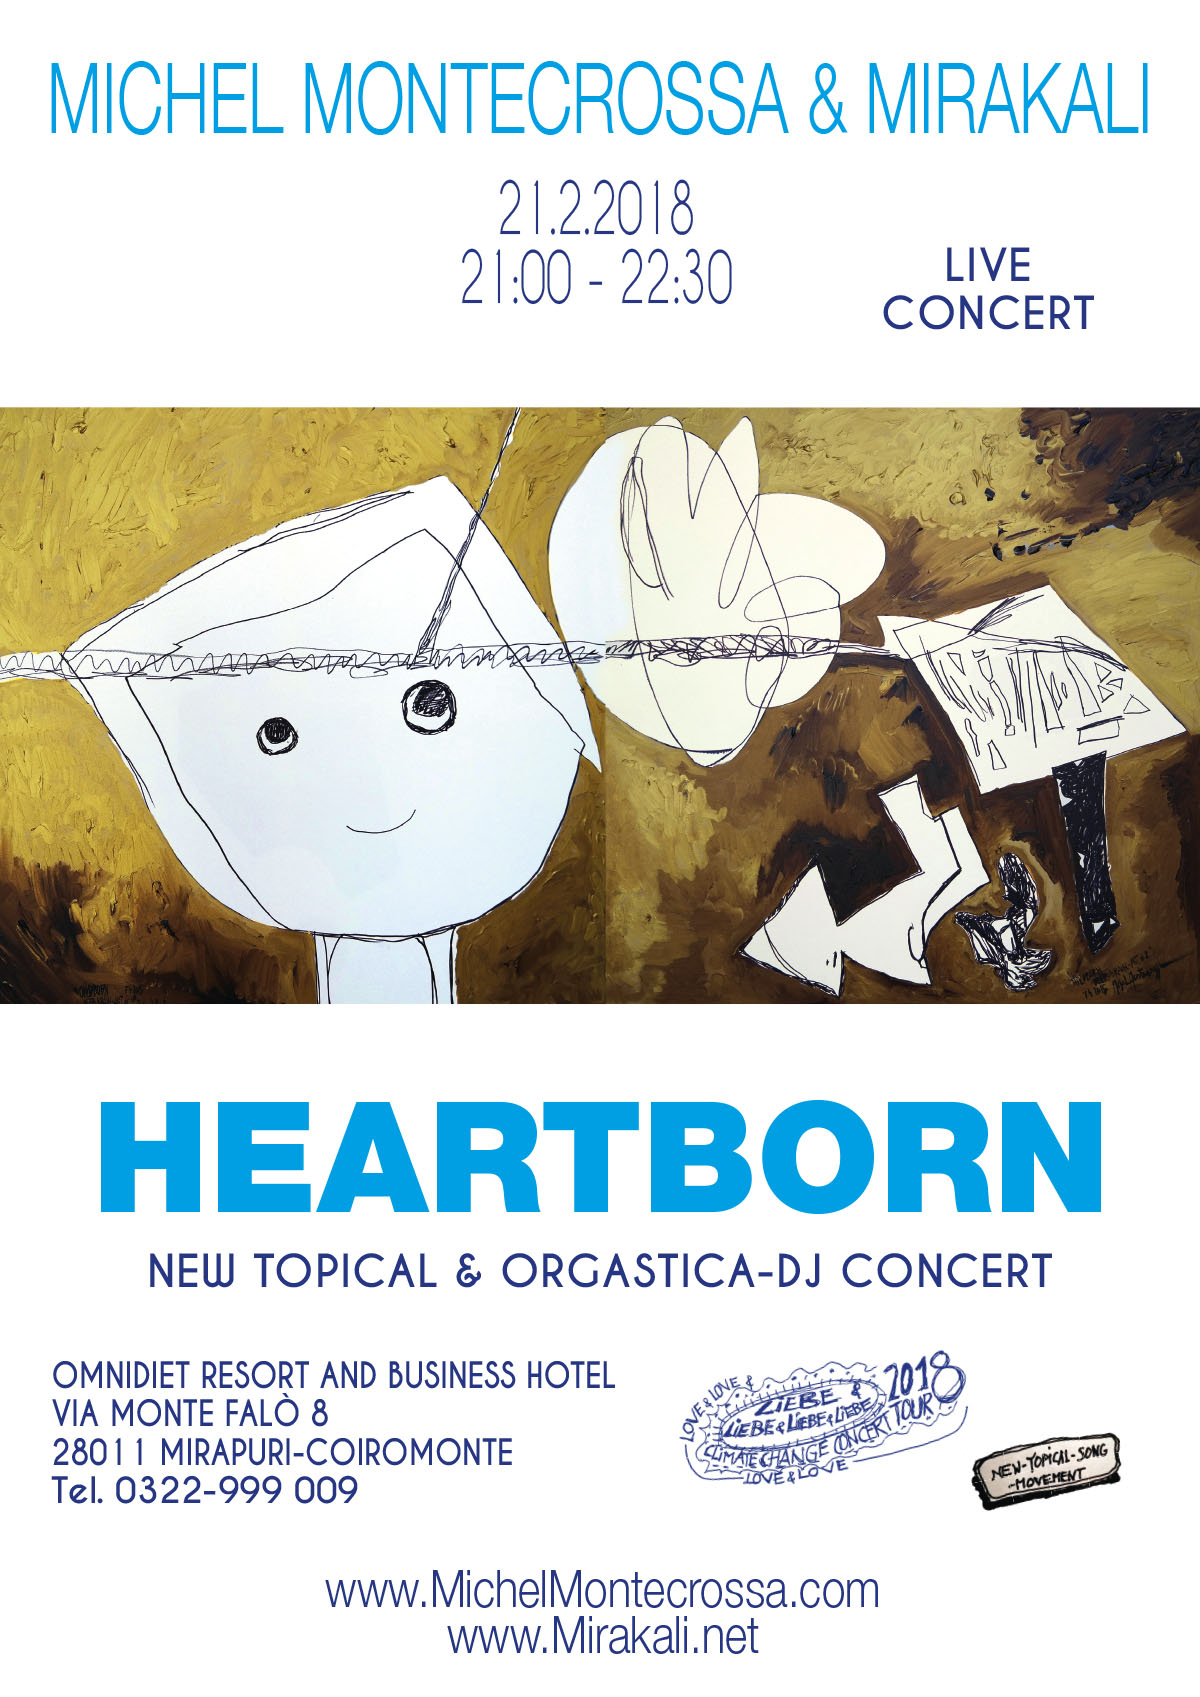 'Heartborn' New-Topical Singer/Songwriter & Orgastica-DJ Concert with Michel Montecrossa and Mirakali